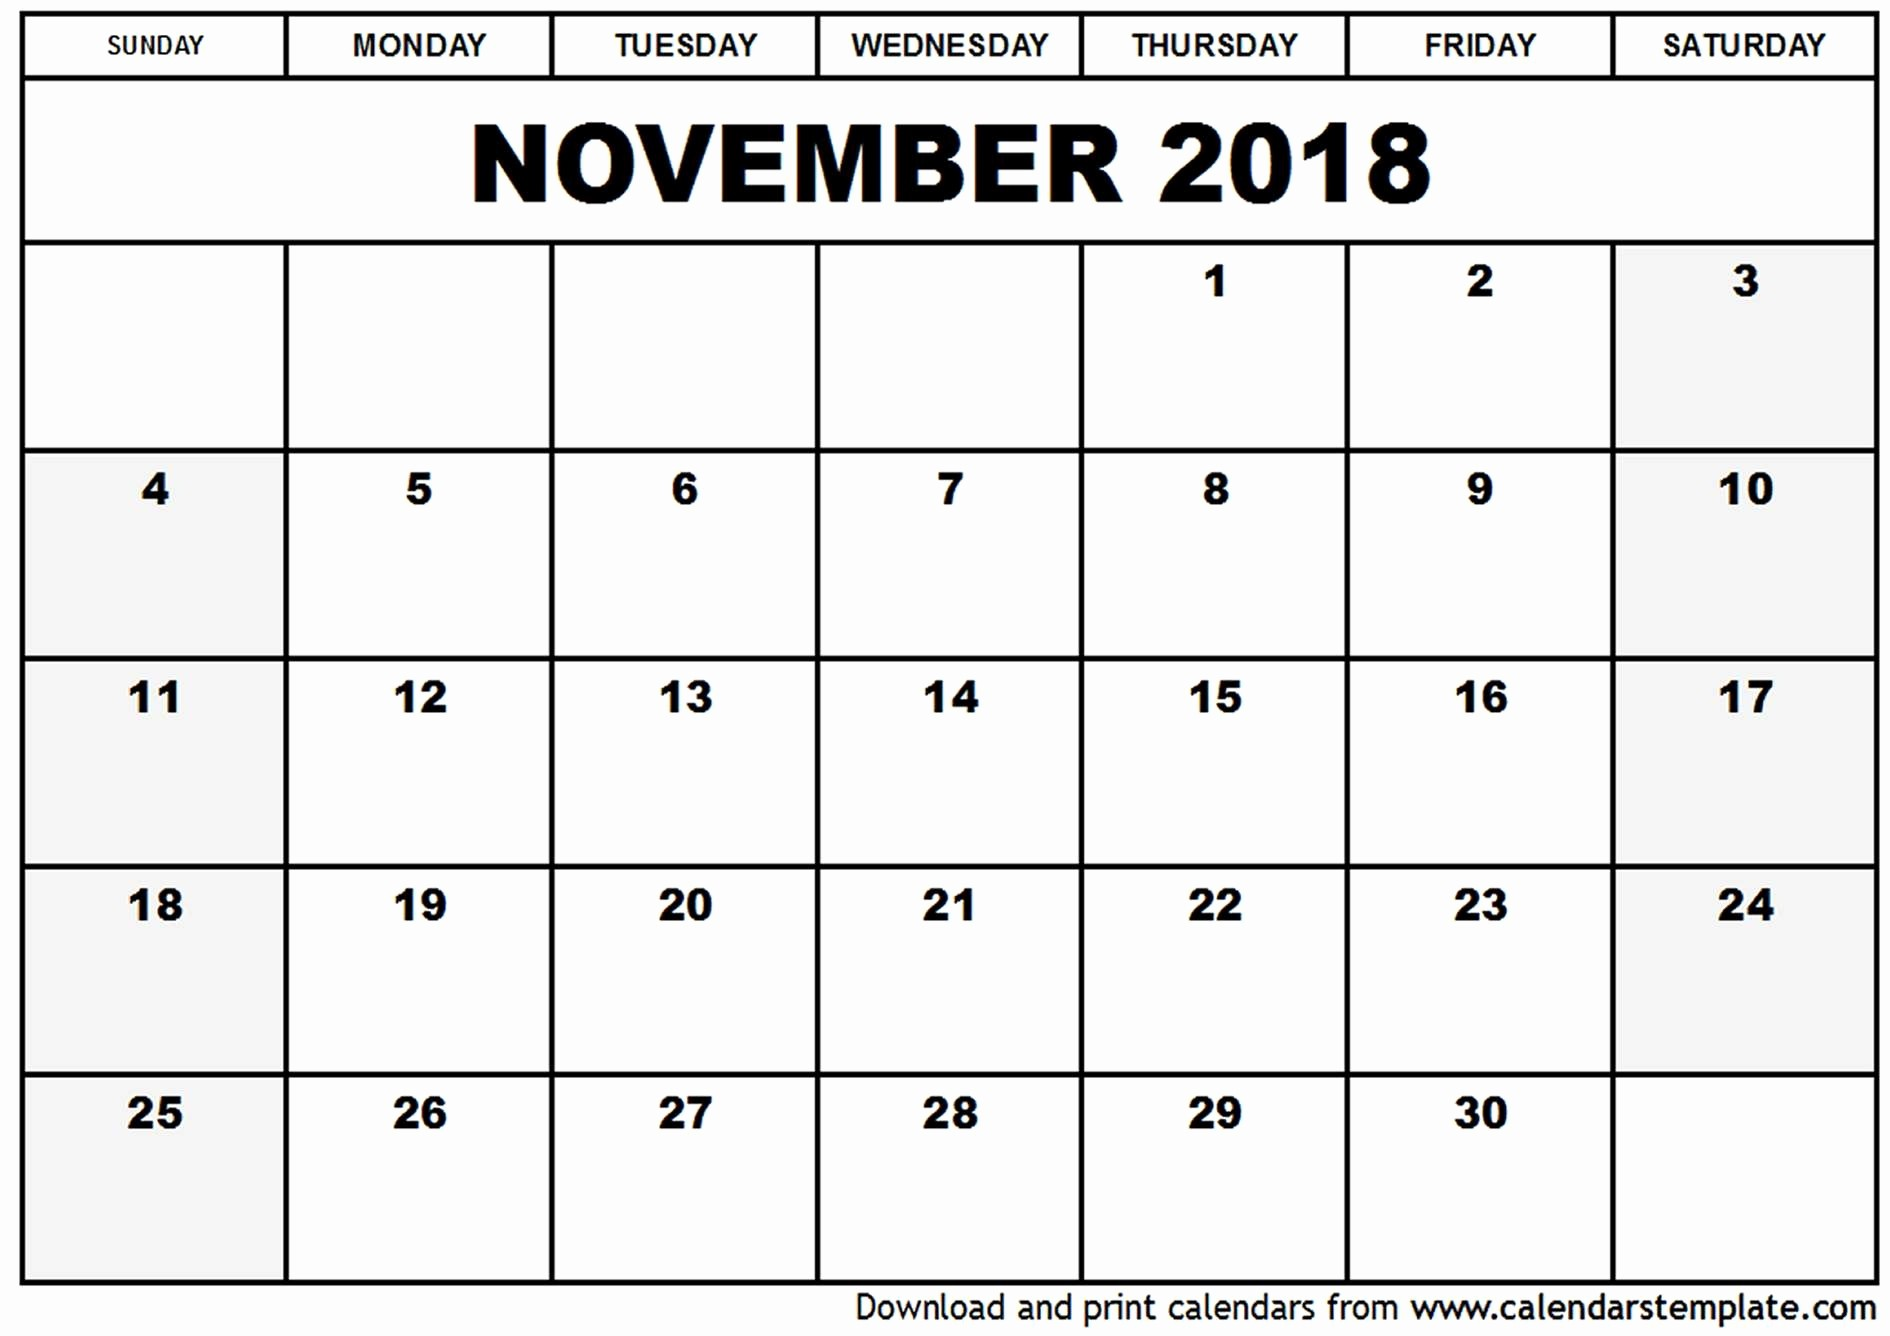 Month by Month Calendar Template Awesome 2018 Monthly Calendars Printable 15 Free